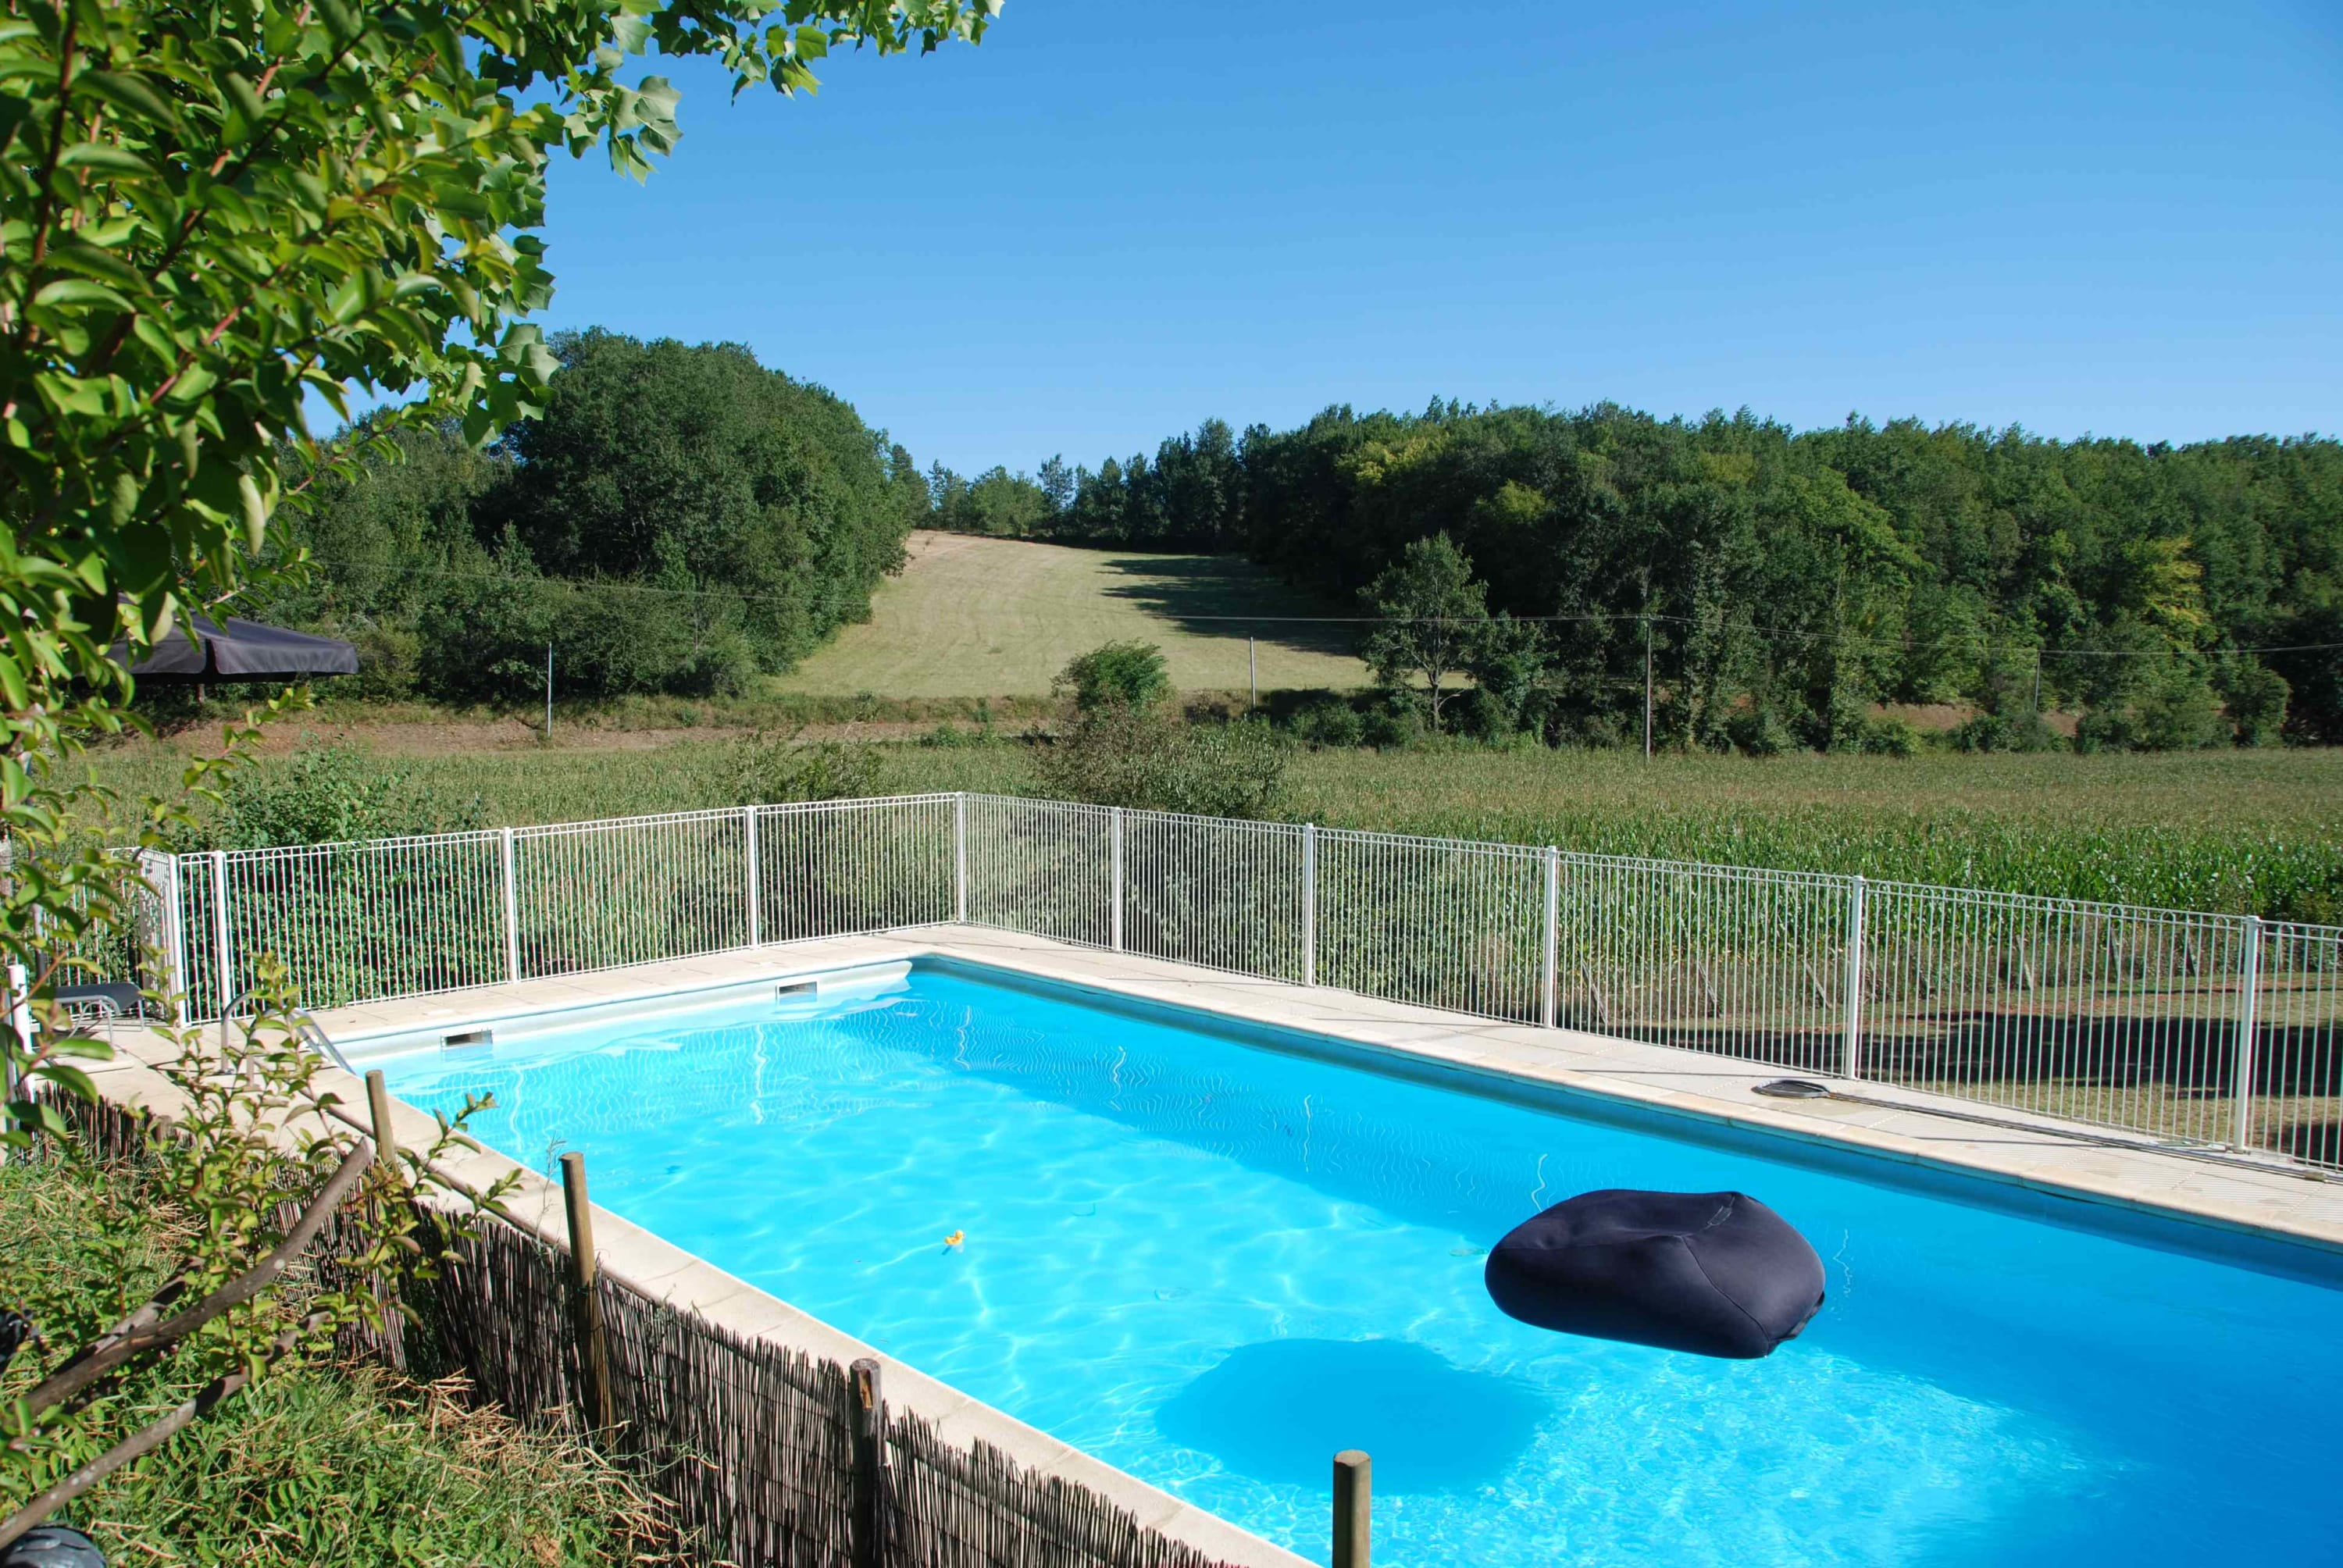 Les Hirondelles, a rustic and natural family friendly cottage with...